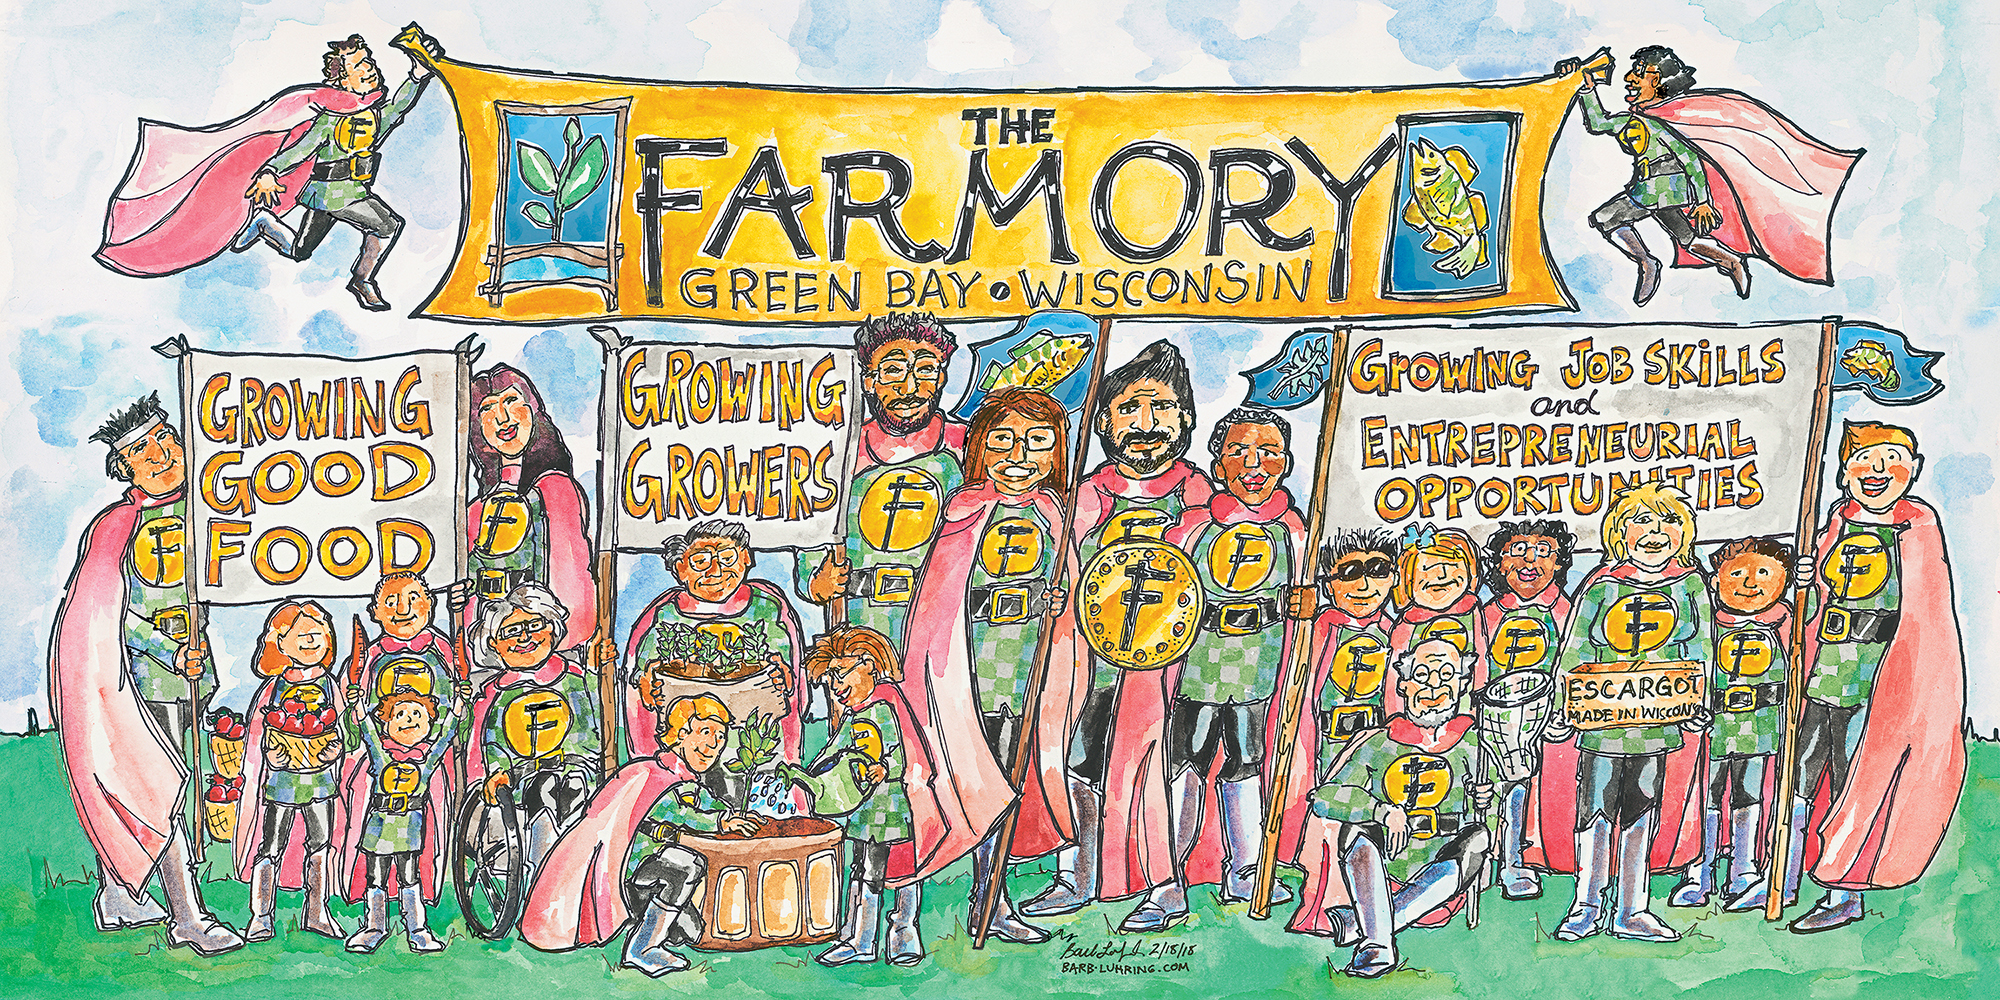 The Farmory 3ft. x 6 ft. print from watercolor illustration